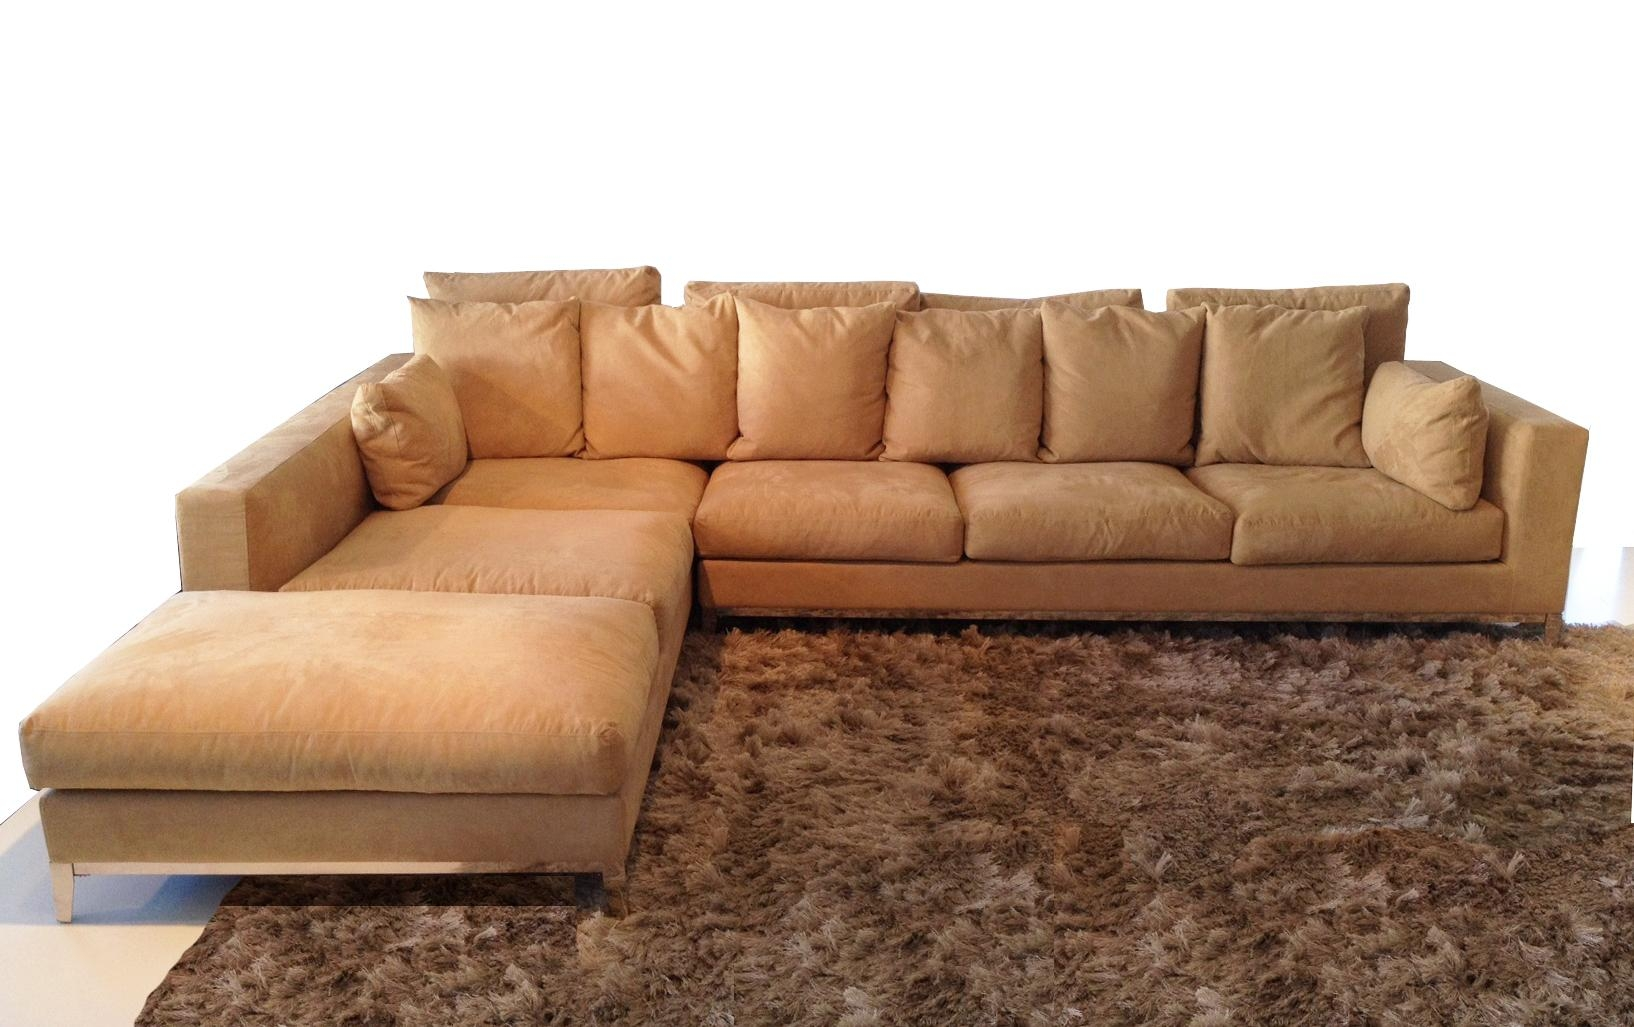 20 collection of long chaise sofa sofa ideas for Chaise long sofa